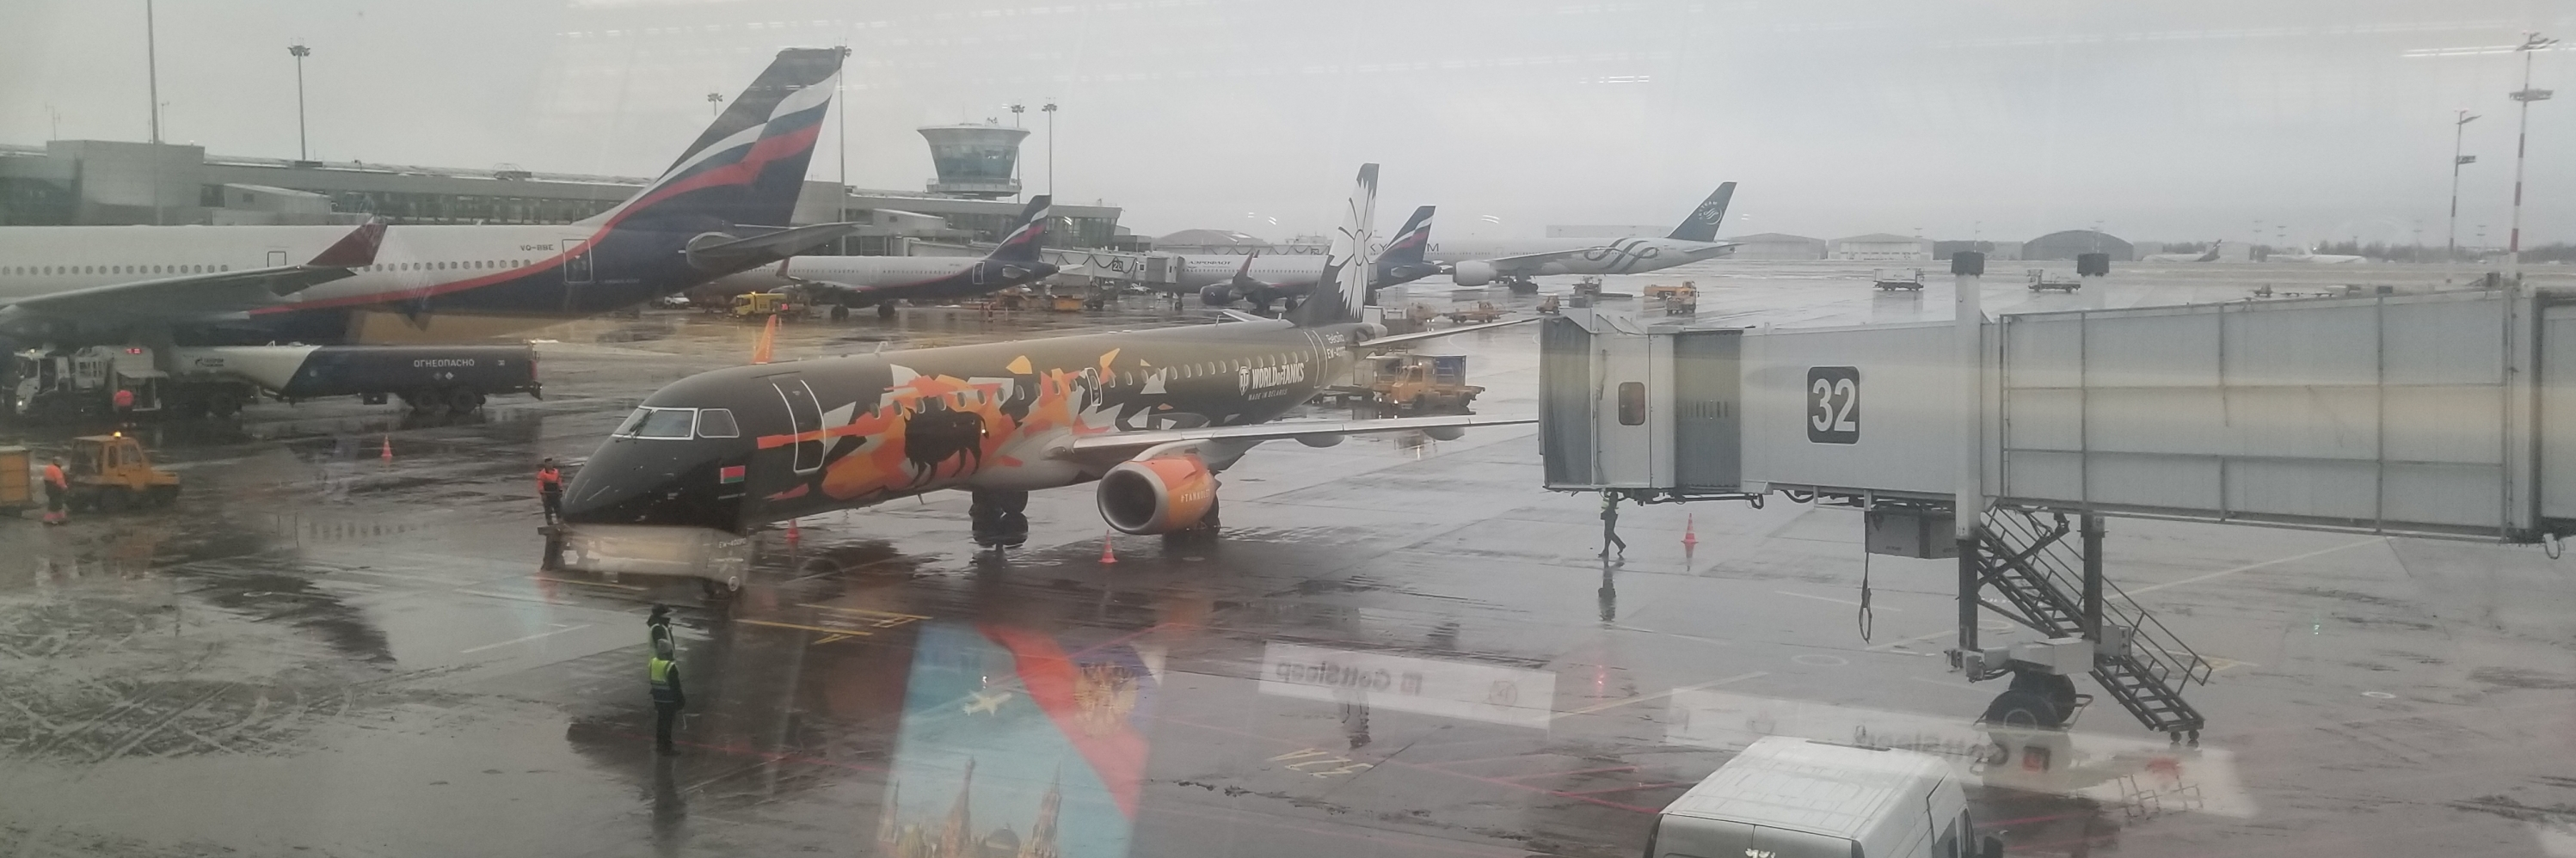 https://gody.vn/blog/nuocngahaihuoc6464/post/san-bay-2-sheremetyevo-6128